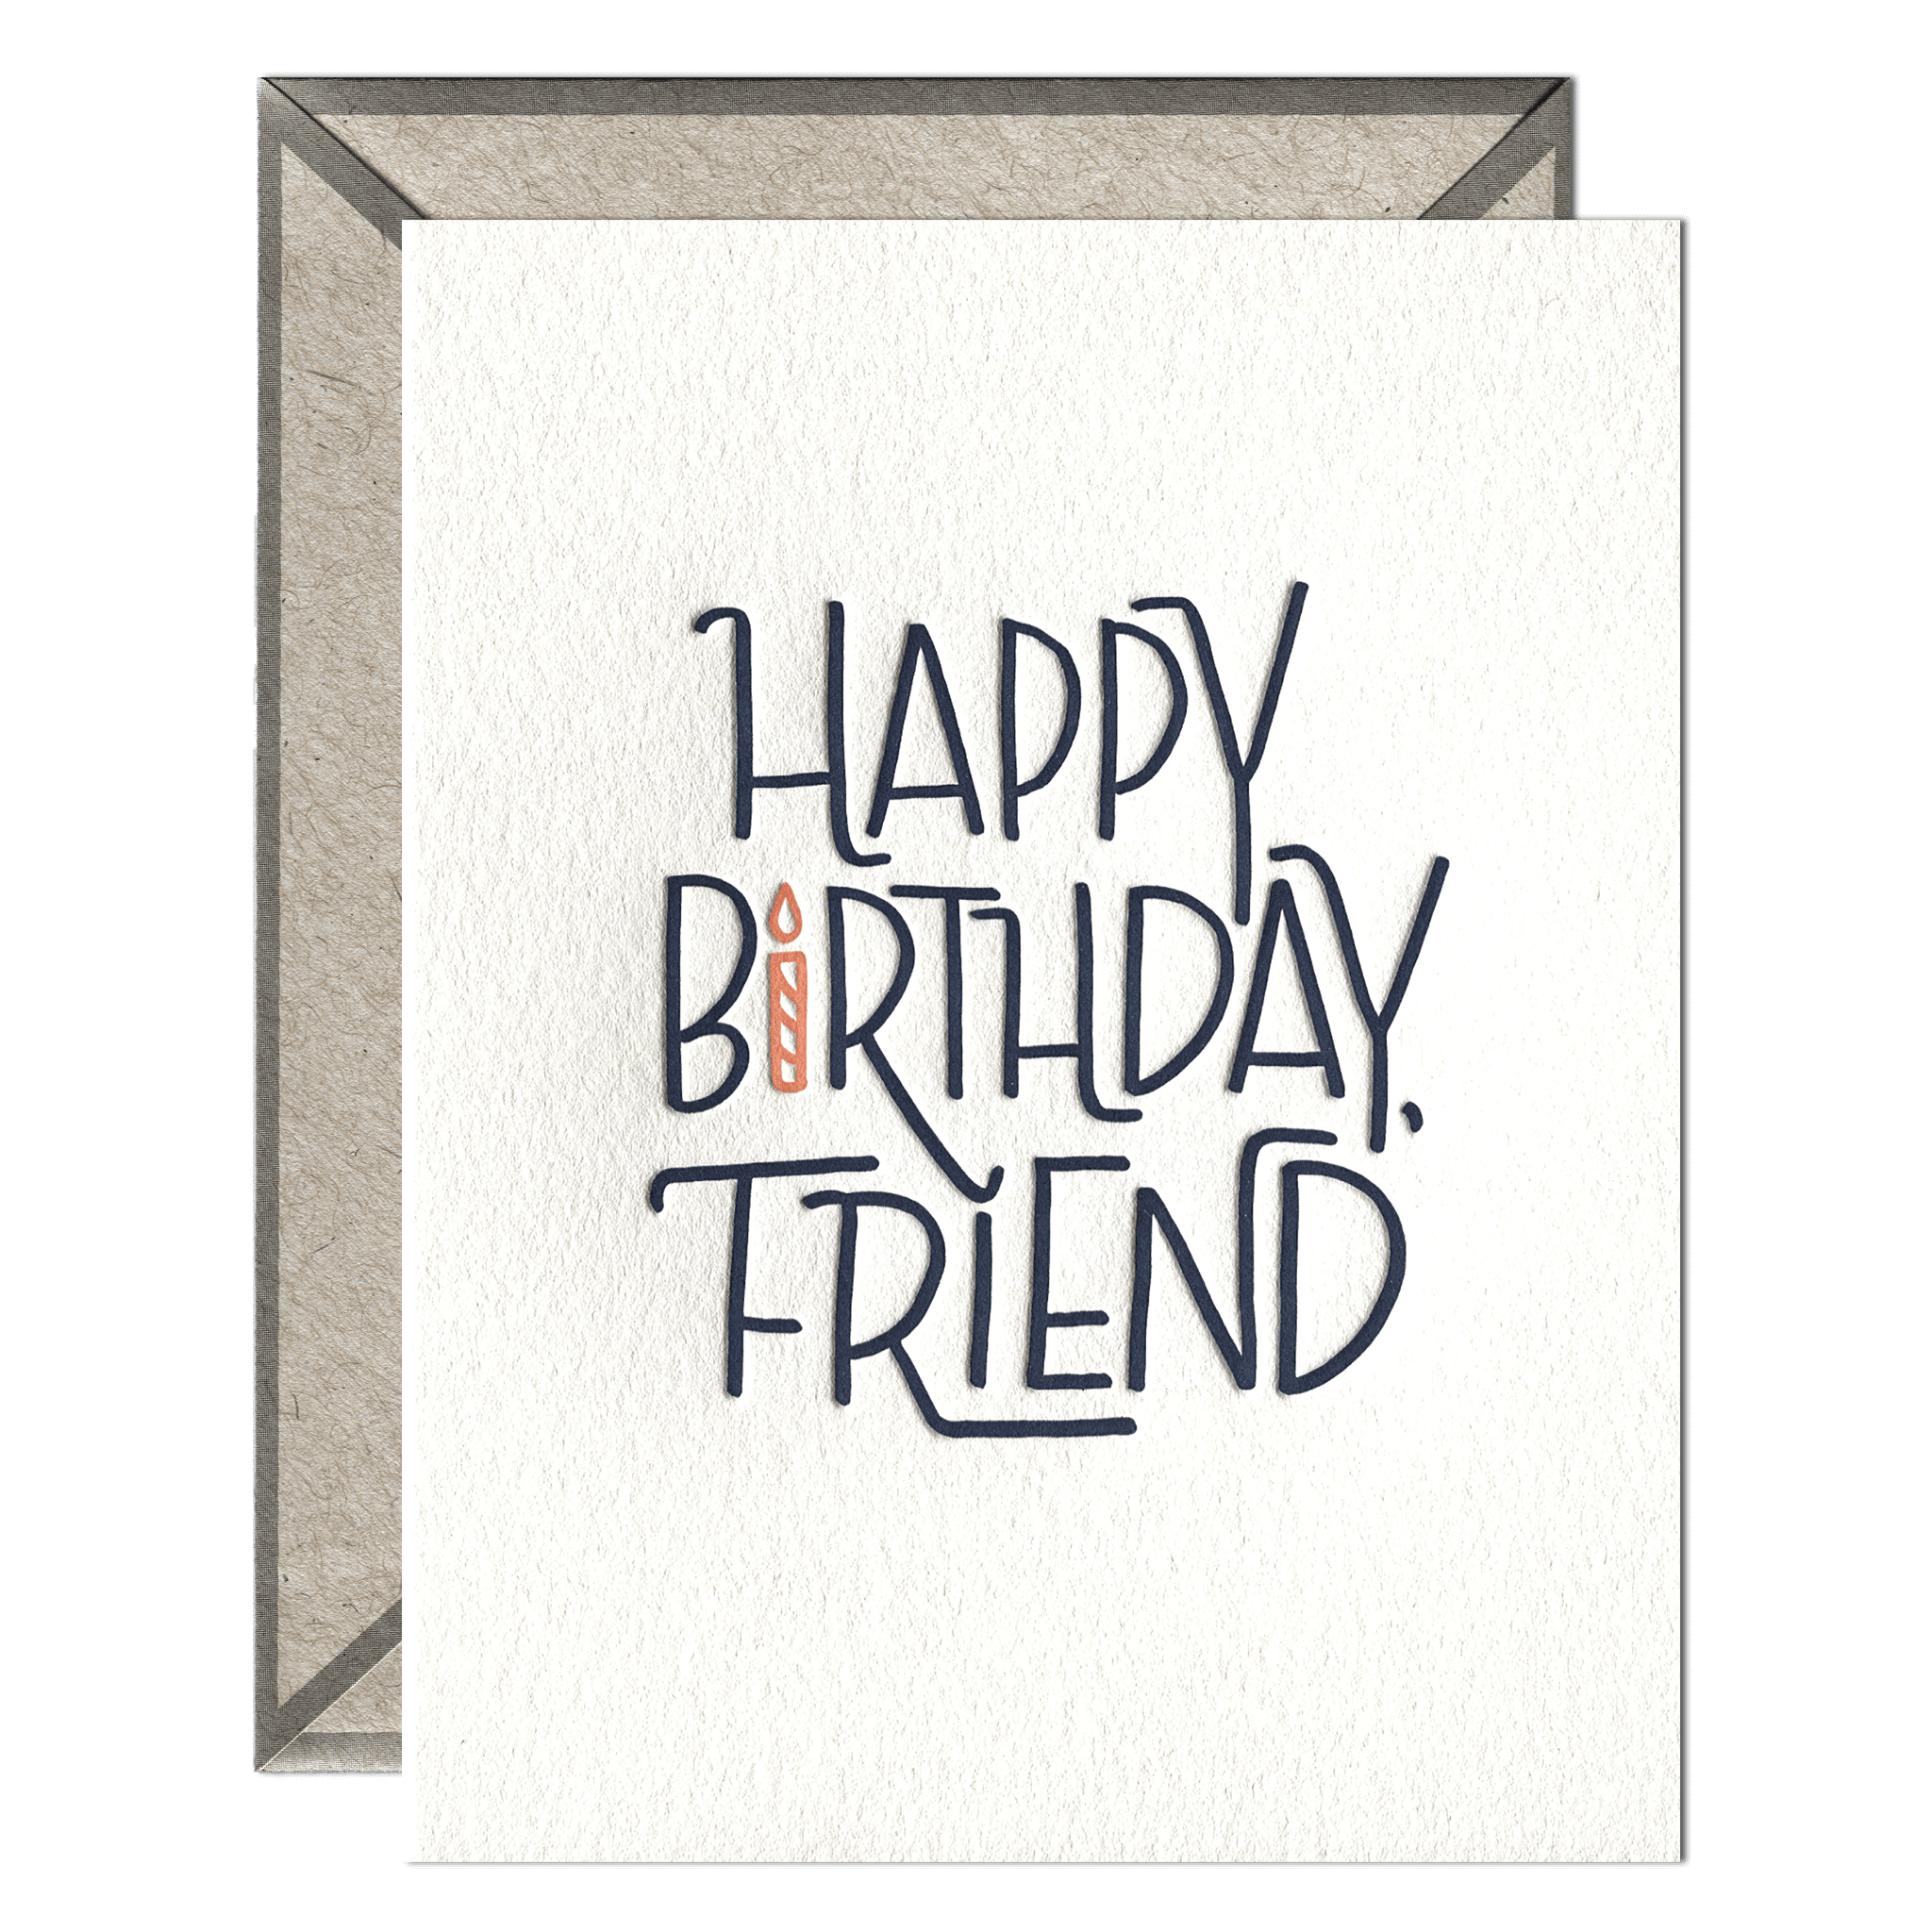 Happy Birthday Friend Letterpress Greeting Card With Envelope